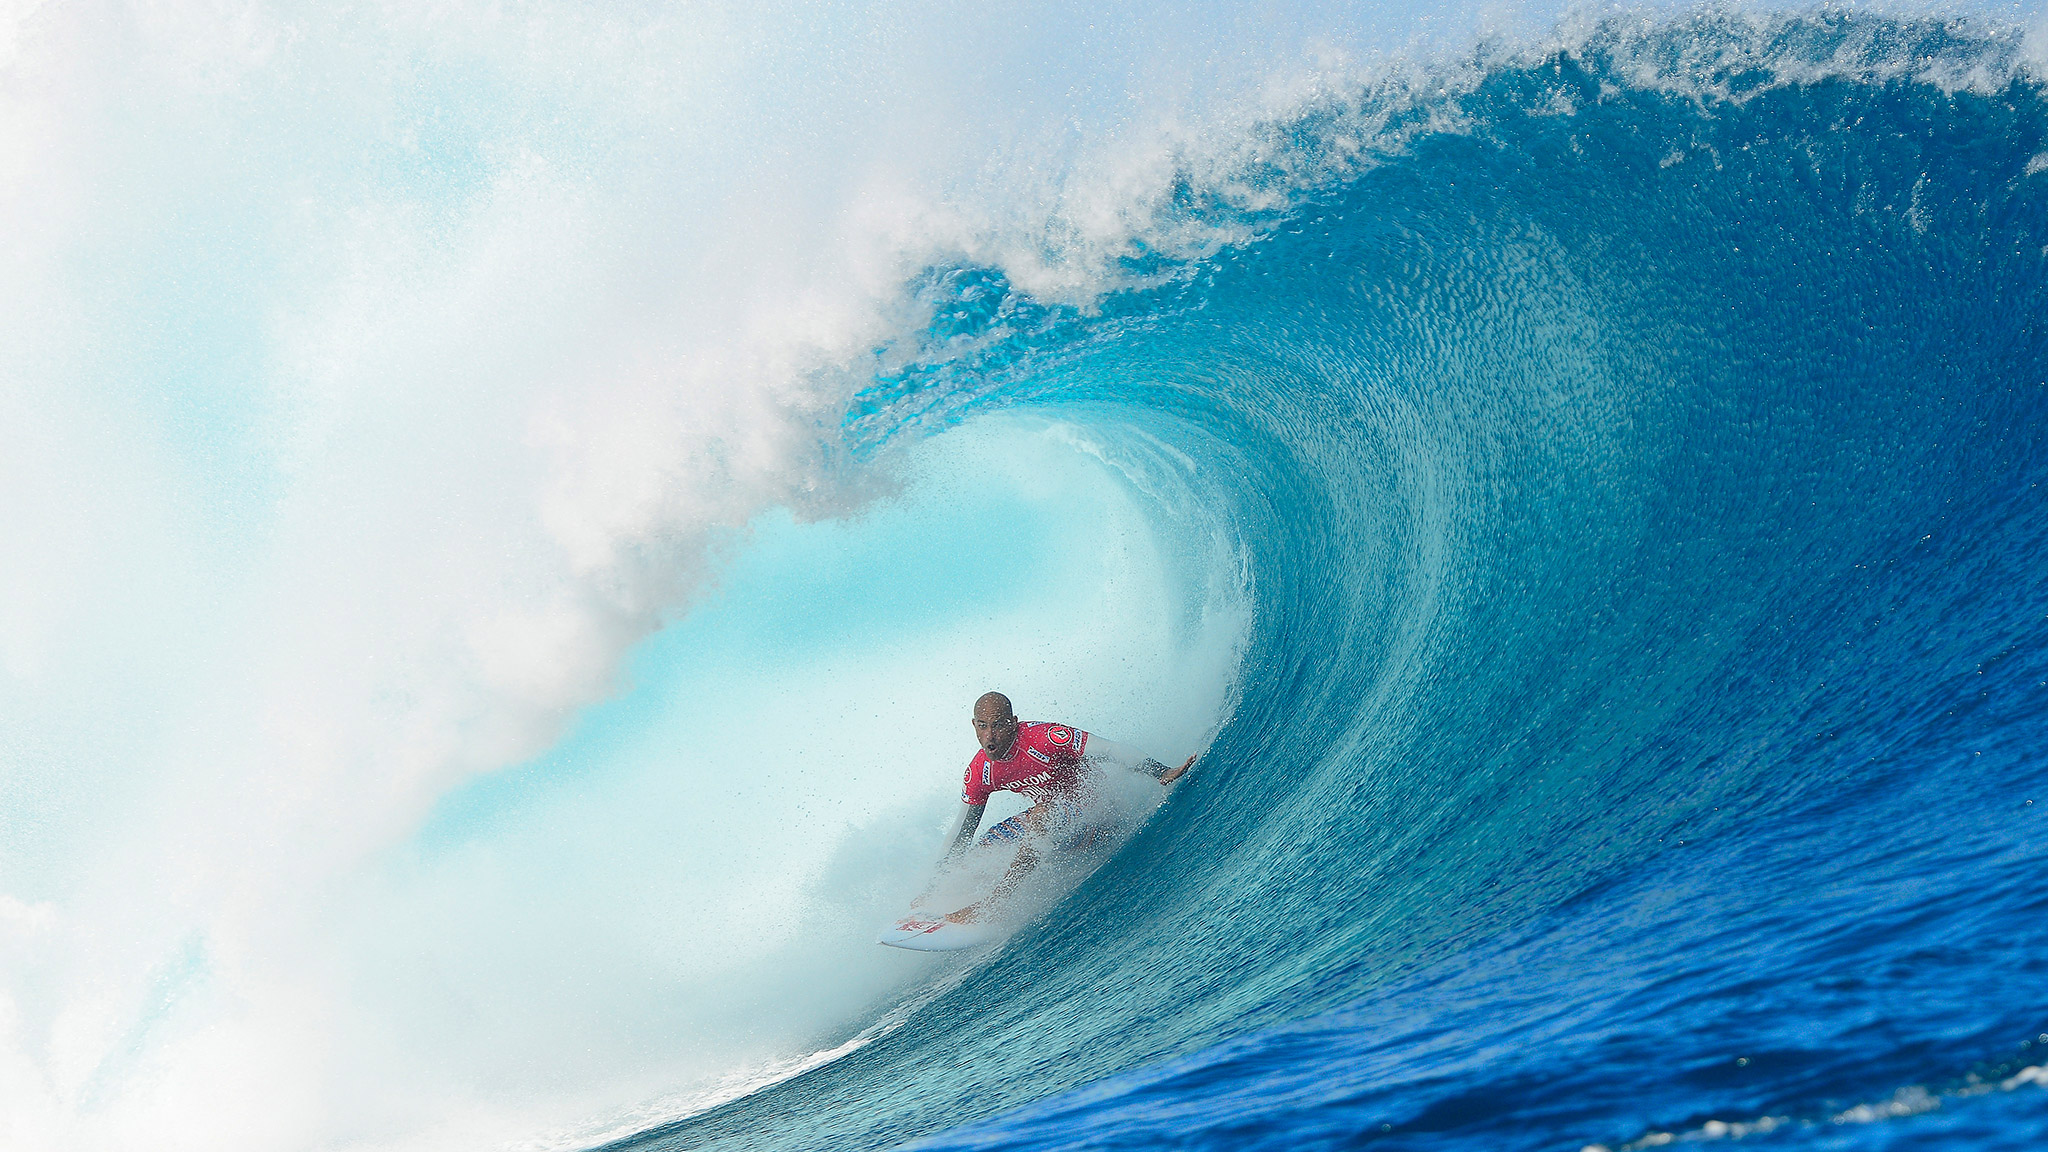 Kelly Slater won his second straight Volcom Fiji Pro by knocking off Mick Fanning in the final heat, which included a perfect 10.